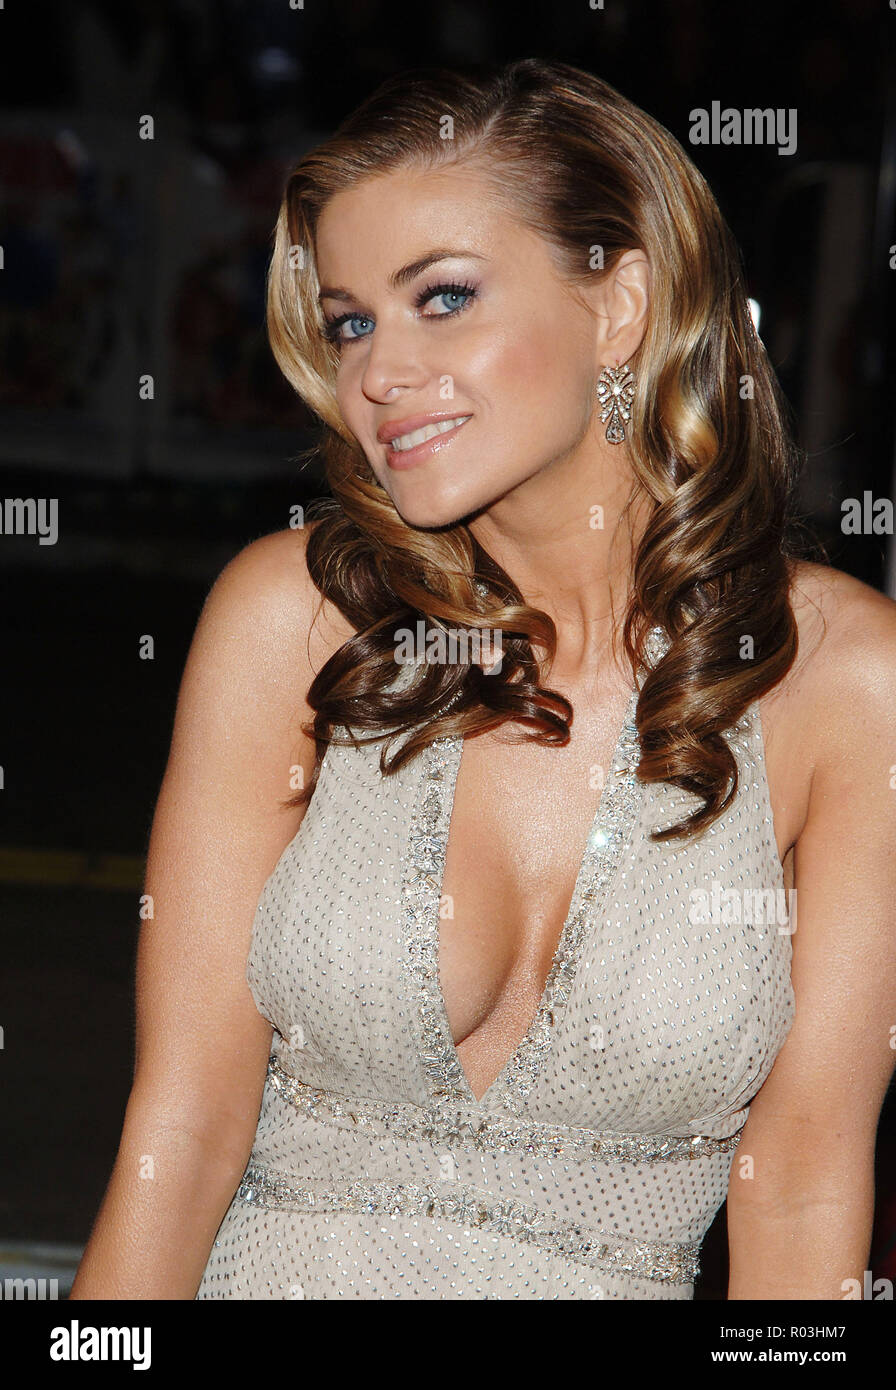 Carmen Electra arriving at the CHEAPER BY THE DOZEN 2 Premiere at the Westwood Theatre in Los Angeles. December 13, 2005.21_ElectraCarmen078 Red Carpet Event, Vertical, USA, Film Industry, Celebrities,  Photography, Bestof, Arts Culture and Entertainment, Topix Celebrities fashion /  Vertical, Best of, Event in Hollywood Life - California,  Red Carpet and backstage, USA, Film Industry, Celebrities,  movie celebrities, TV celebrities, Music celebrities, Photography, Bestof, Arts Culture and Entertainment,  Topix, headshot, vertical, one person,, from the year , 2005, inquiry tsuni@Gamma-USA.com - Stock Image